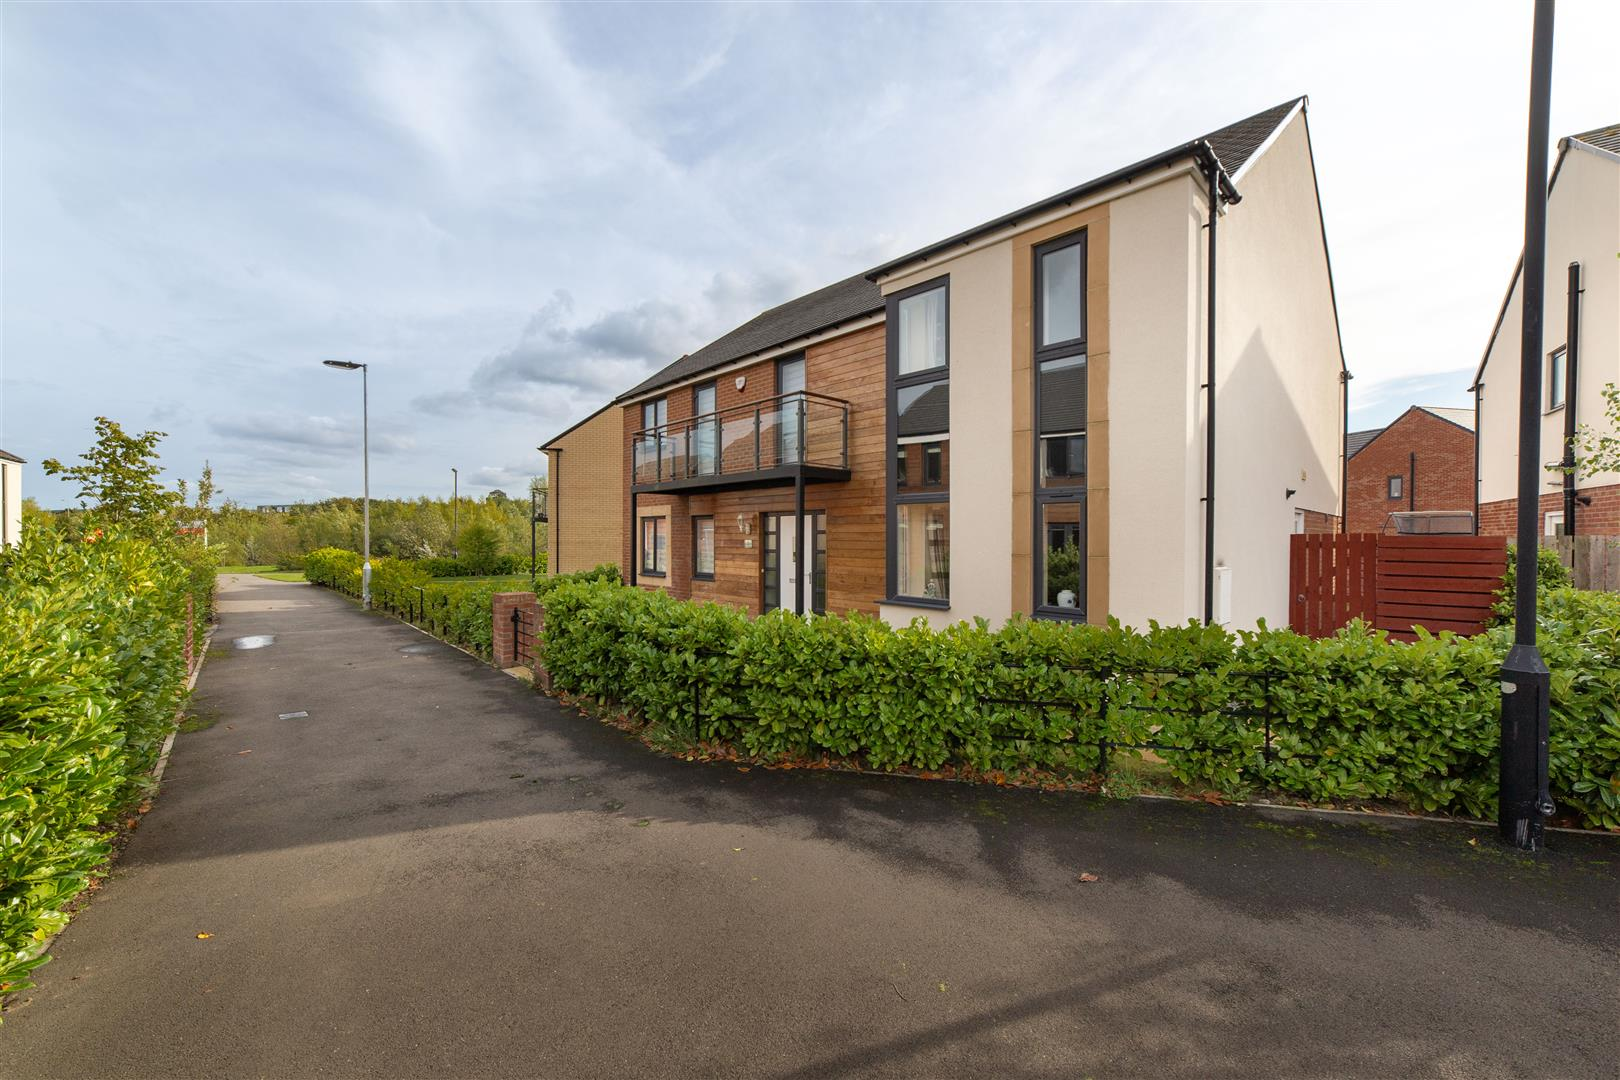 5 bed detached house for sale in Newcastle Upon Tyne, NE13 9AW  - Property Image 1